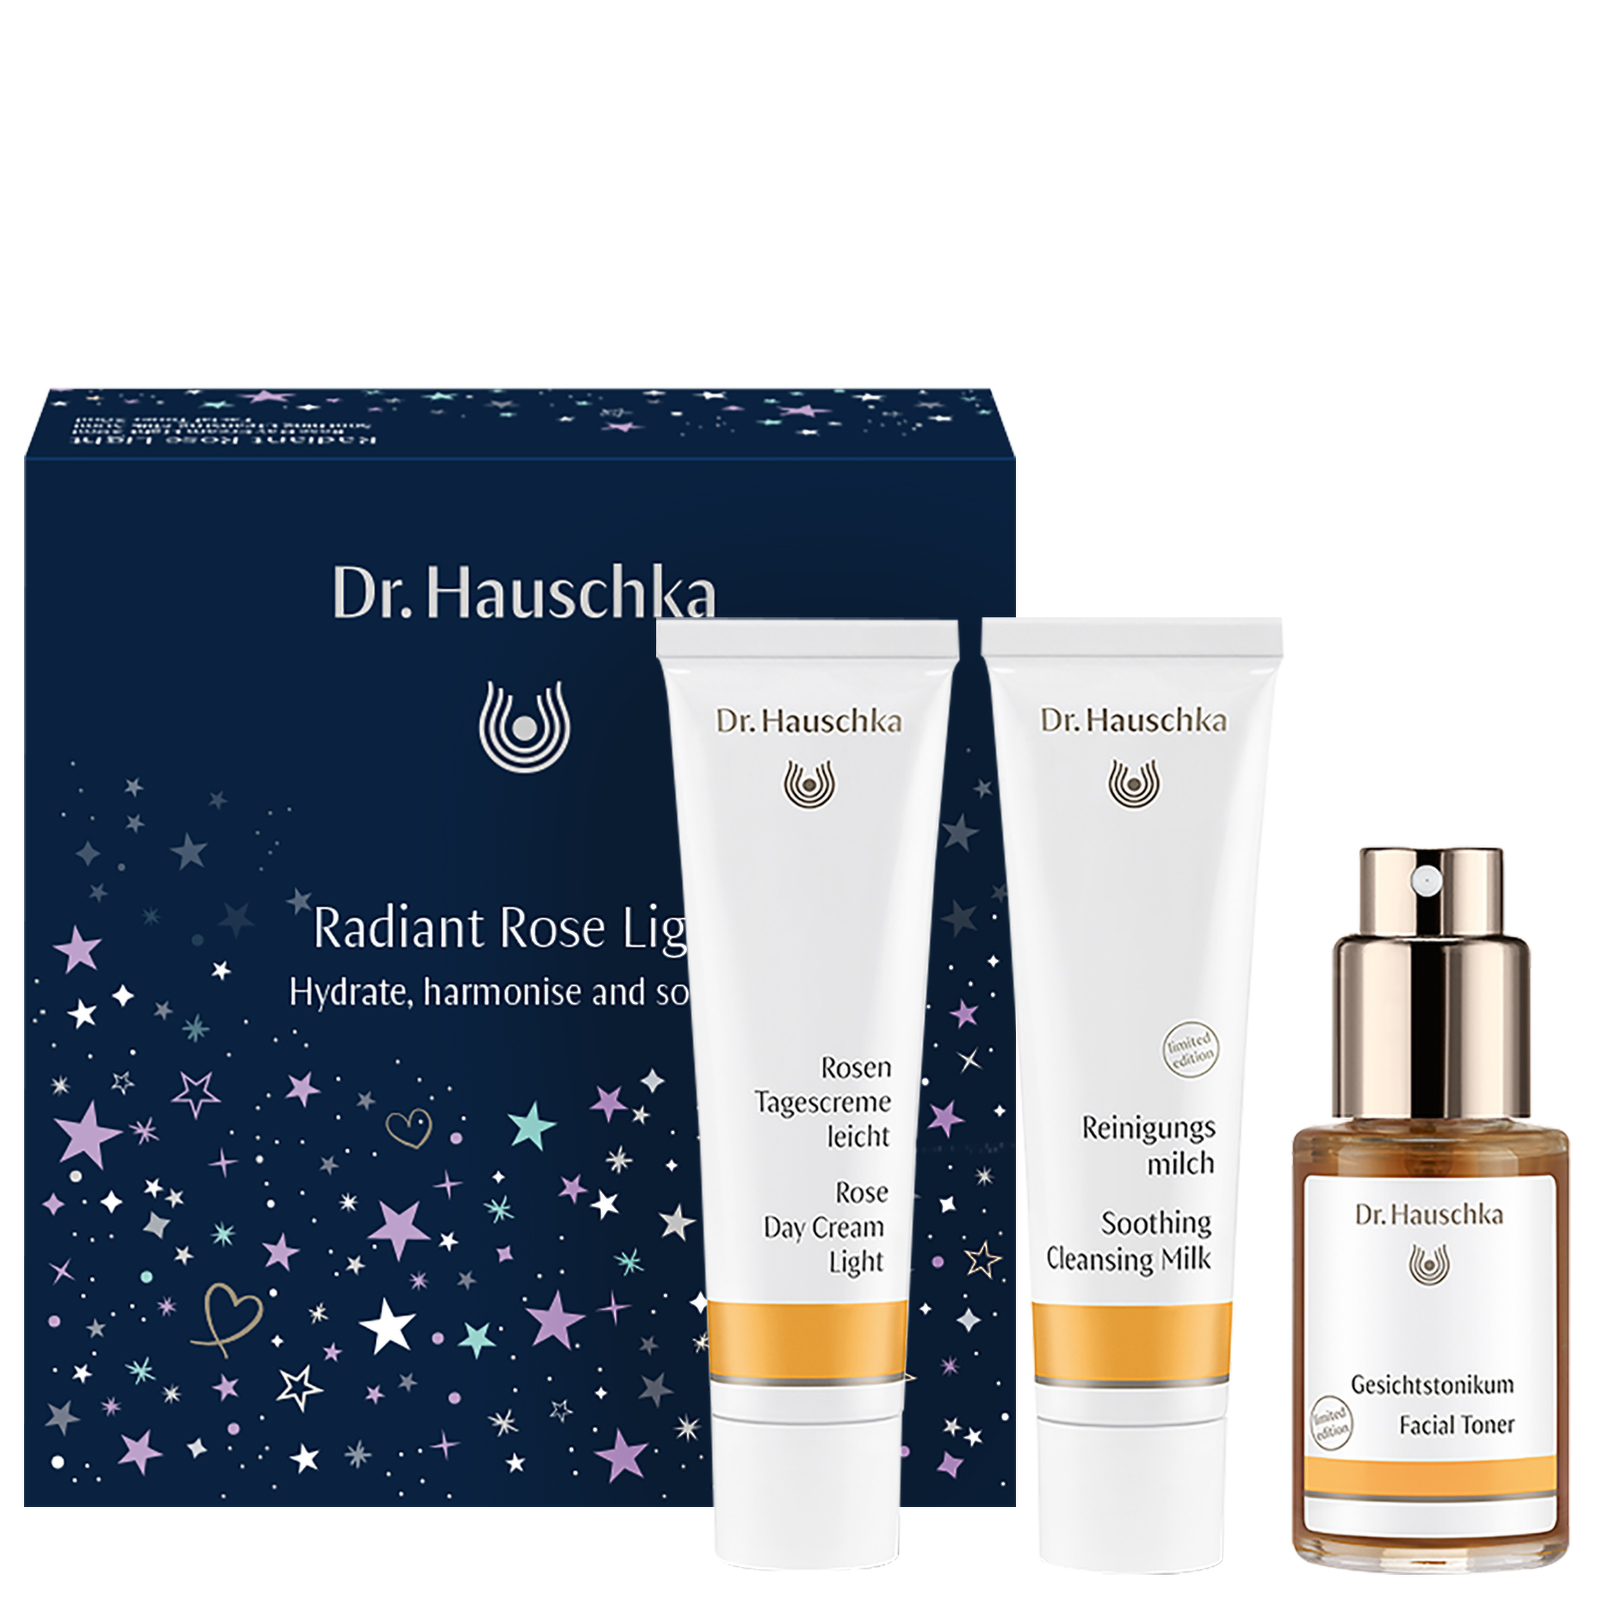 Dr. Hauschka Gifts & Accessories  Radiant Rose Light Kit